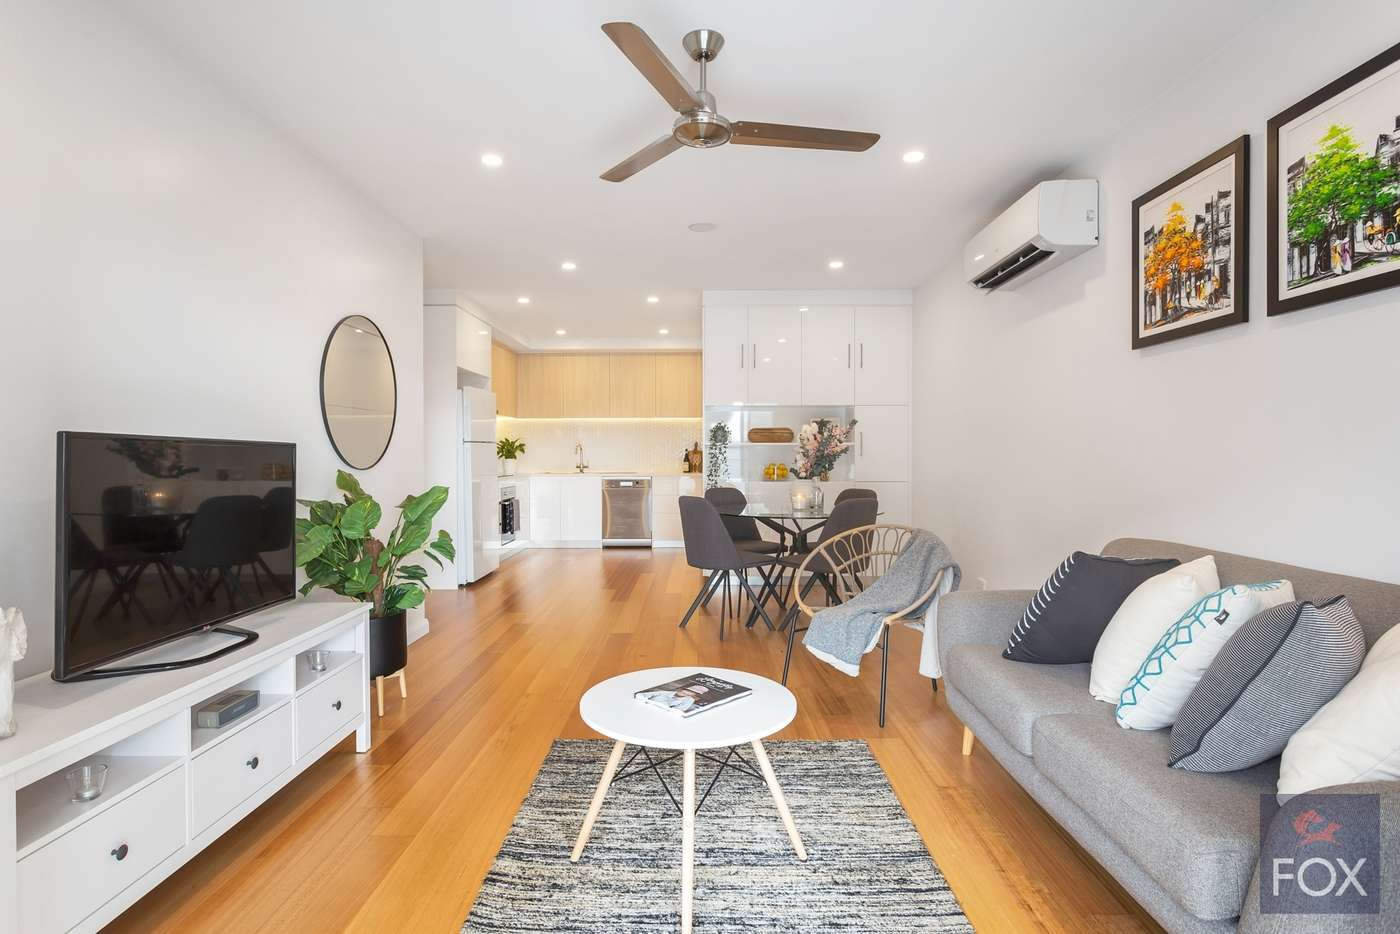 Fifth view of Homely apartment listing, 611/4 Fifth Street, Bowden SA 5007